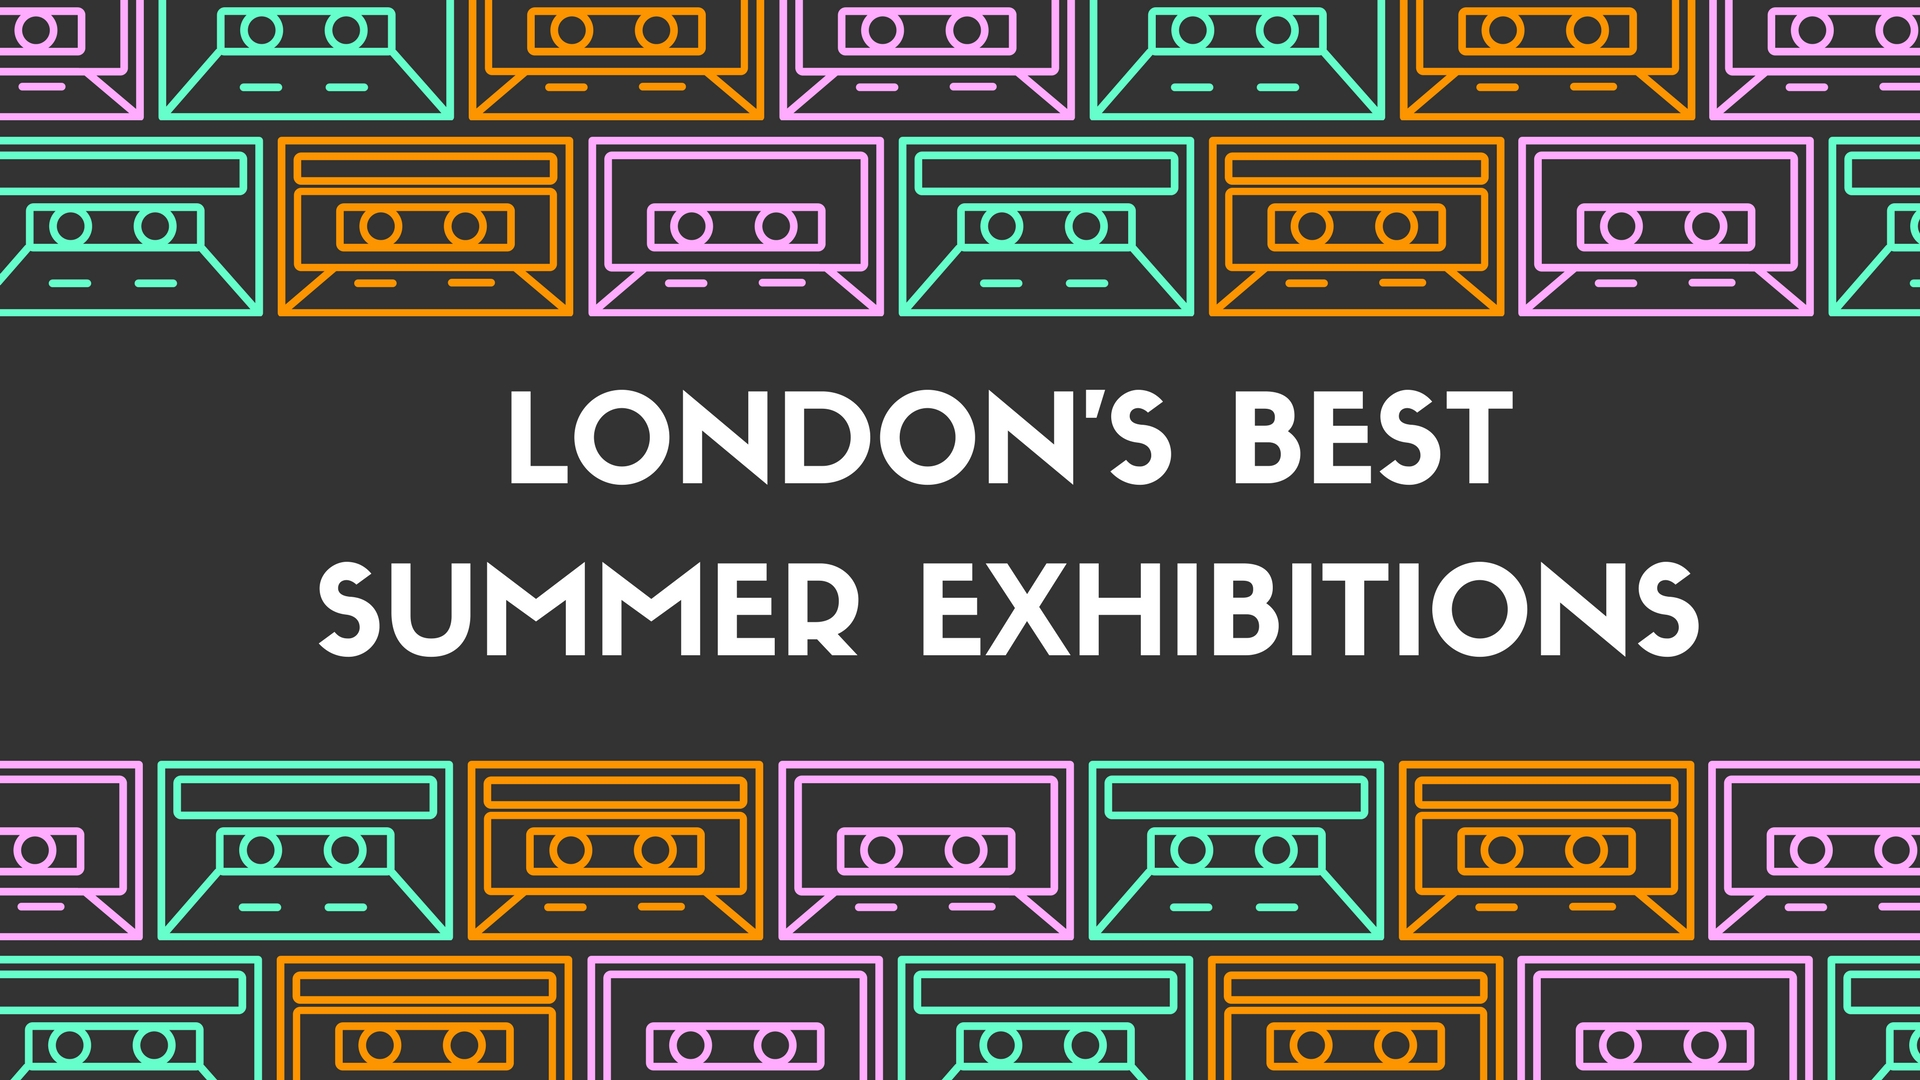 London's Best Summer exhibitions